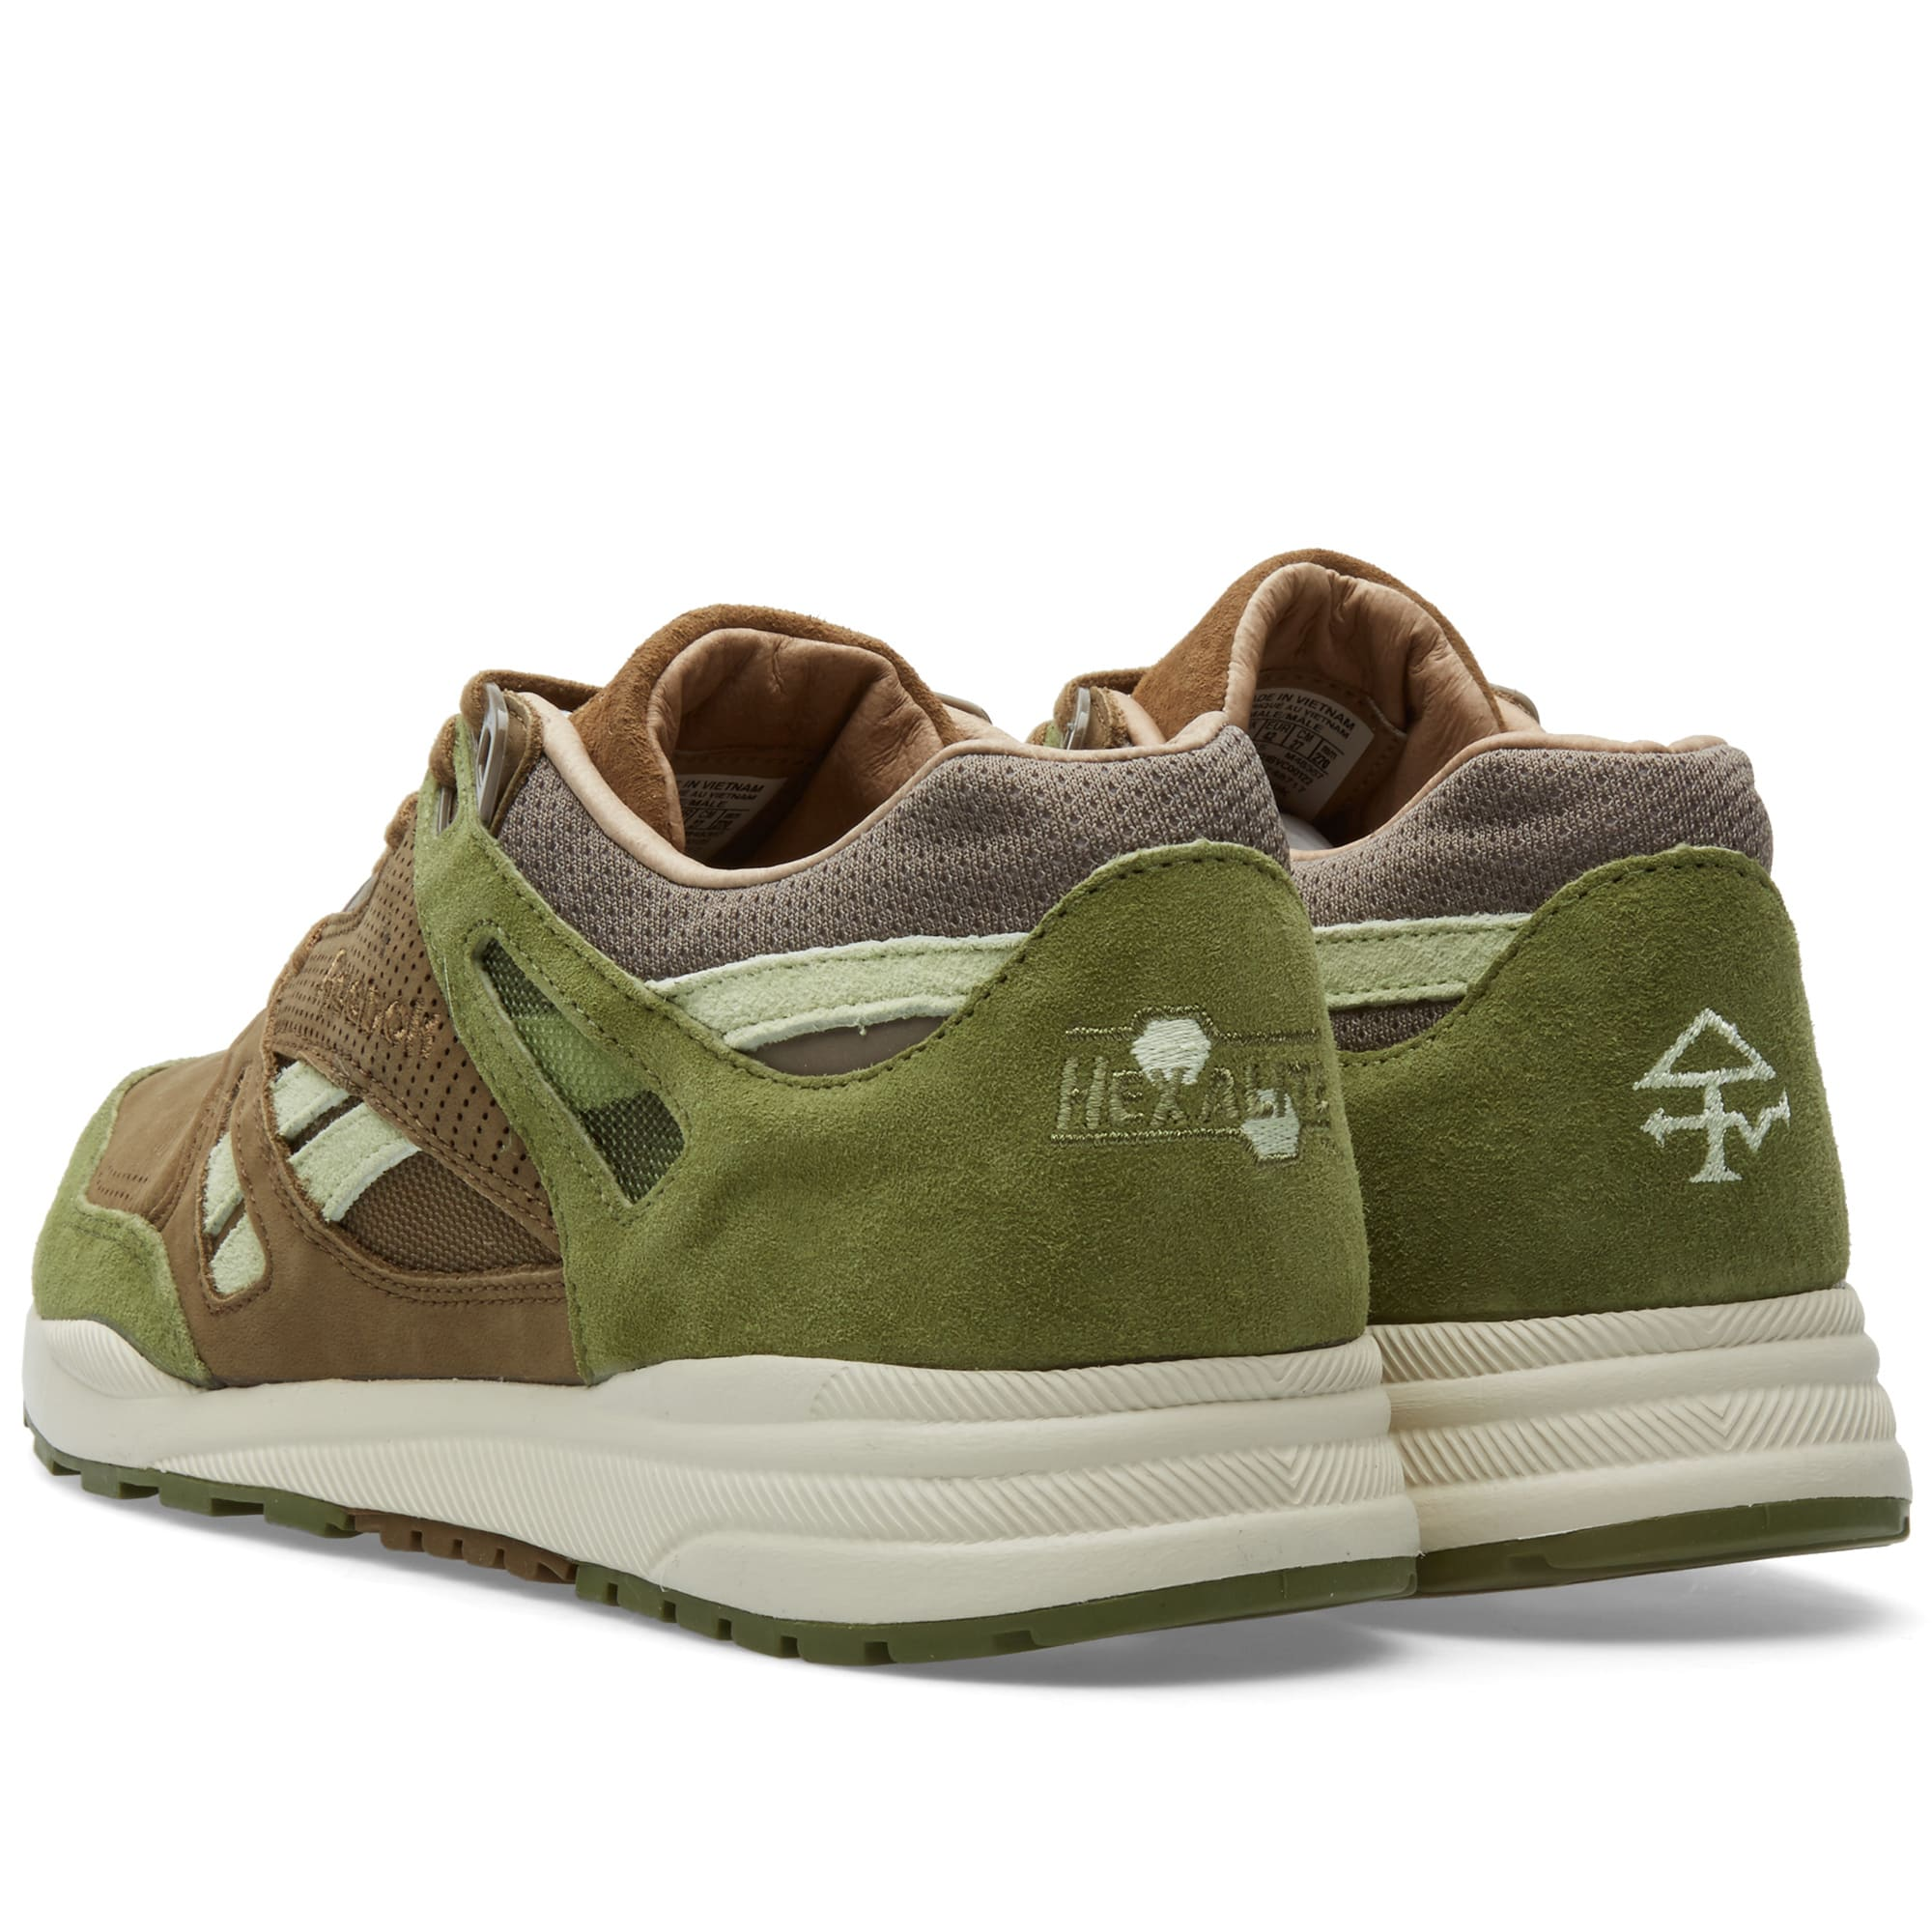 38be676a1 Reebok x Limited Edt Ventilator CN Washed Green   Brown